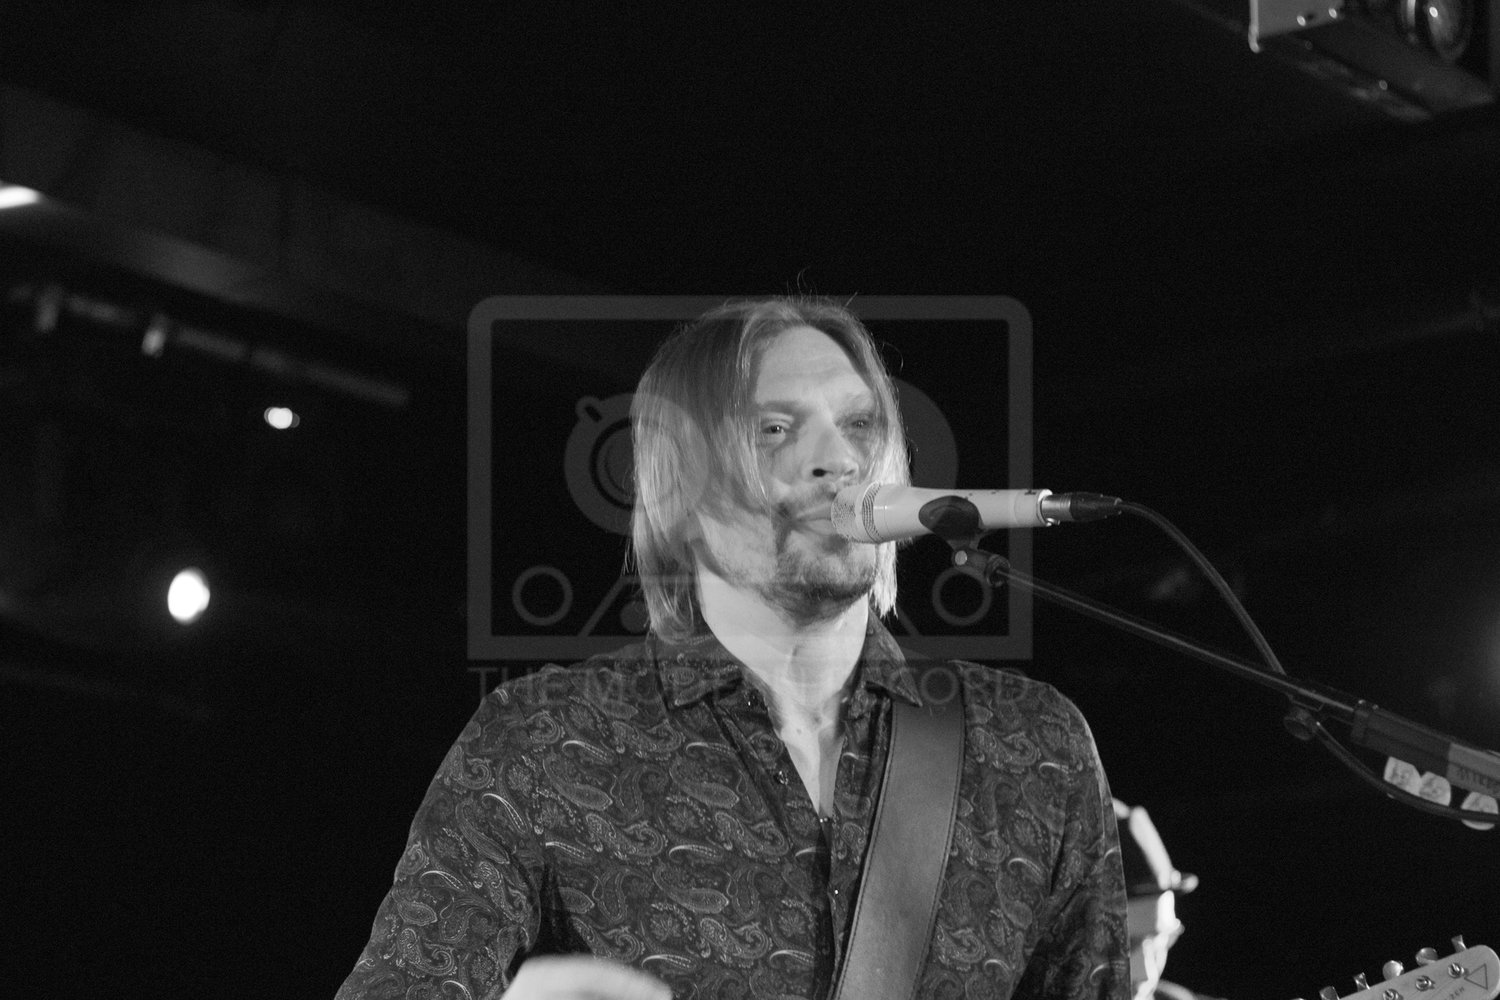 VON HERTZEN BROTHERS PERFORMING AT NEWCASTLE UNIVERSITY STUDENT'S UNION, NEWCASTLE UPON TYNE - 13.12.2018 PICTURE BY: WILL GORMAN PHOTOGRAPHY